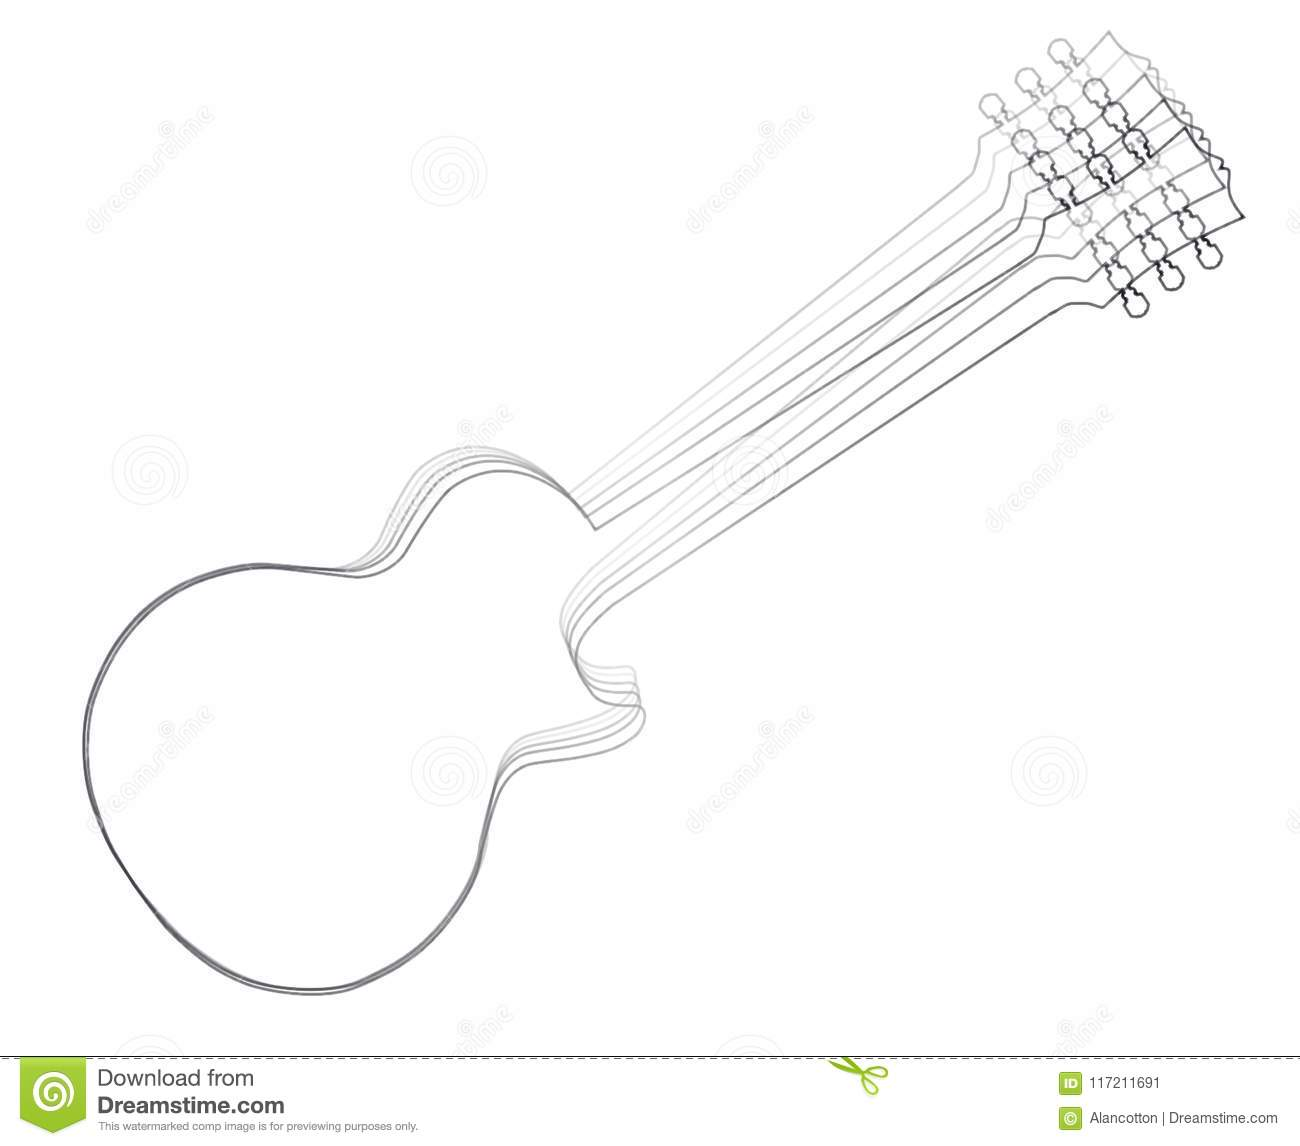 Moving Electric Guitar Outline Stock Vector Illustration Of Thread